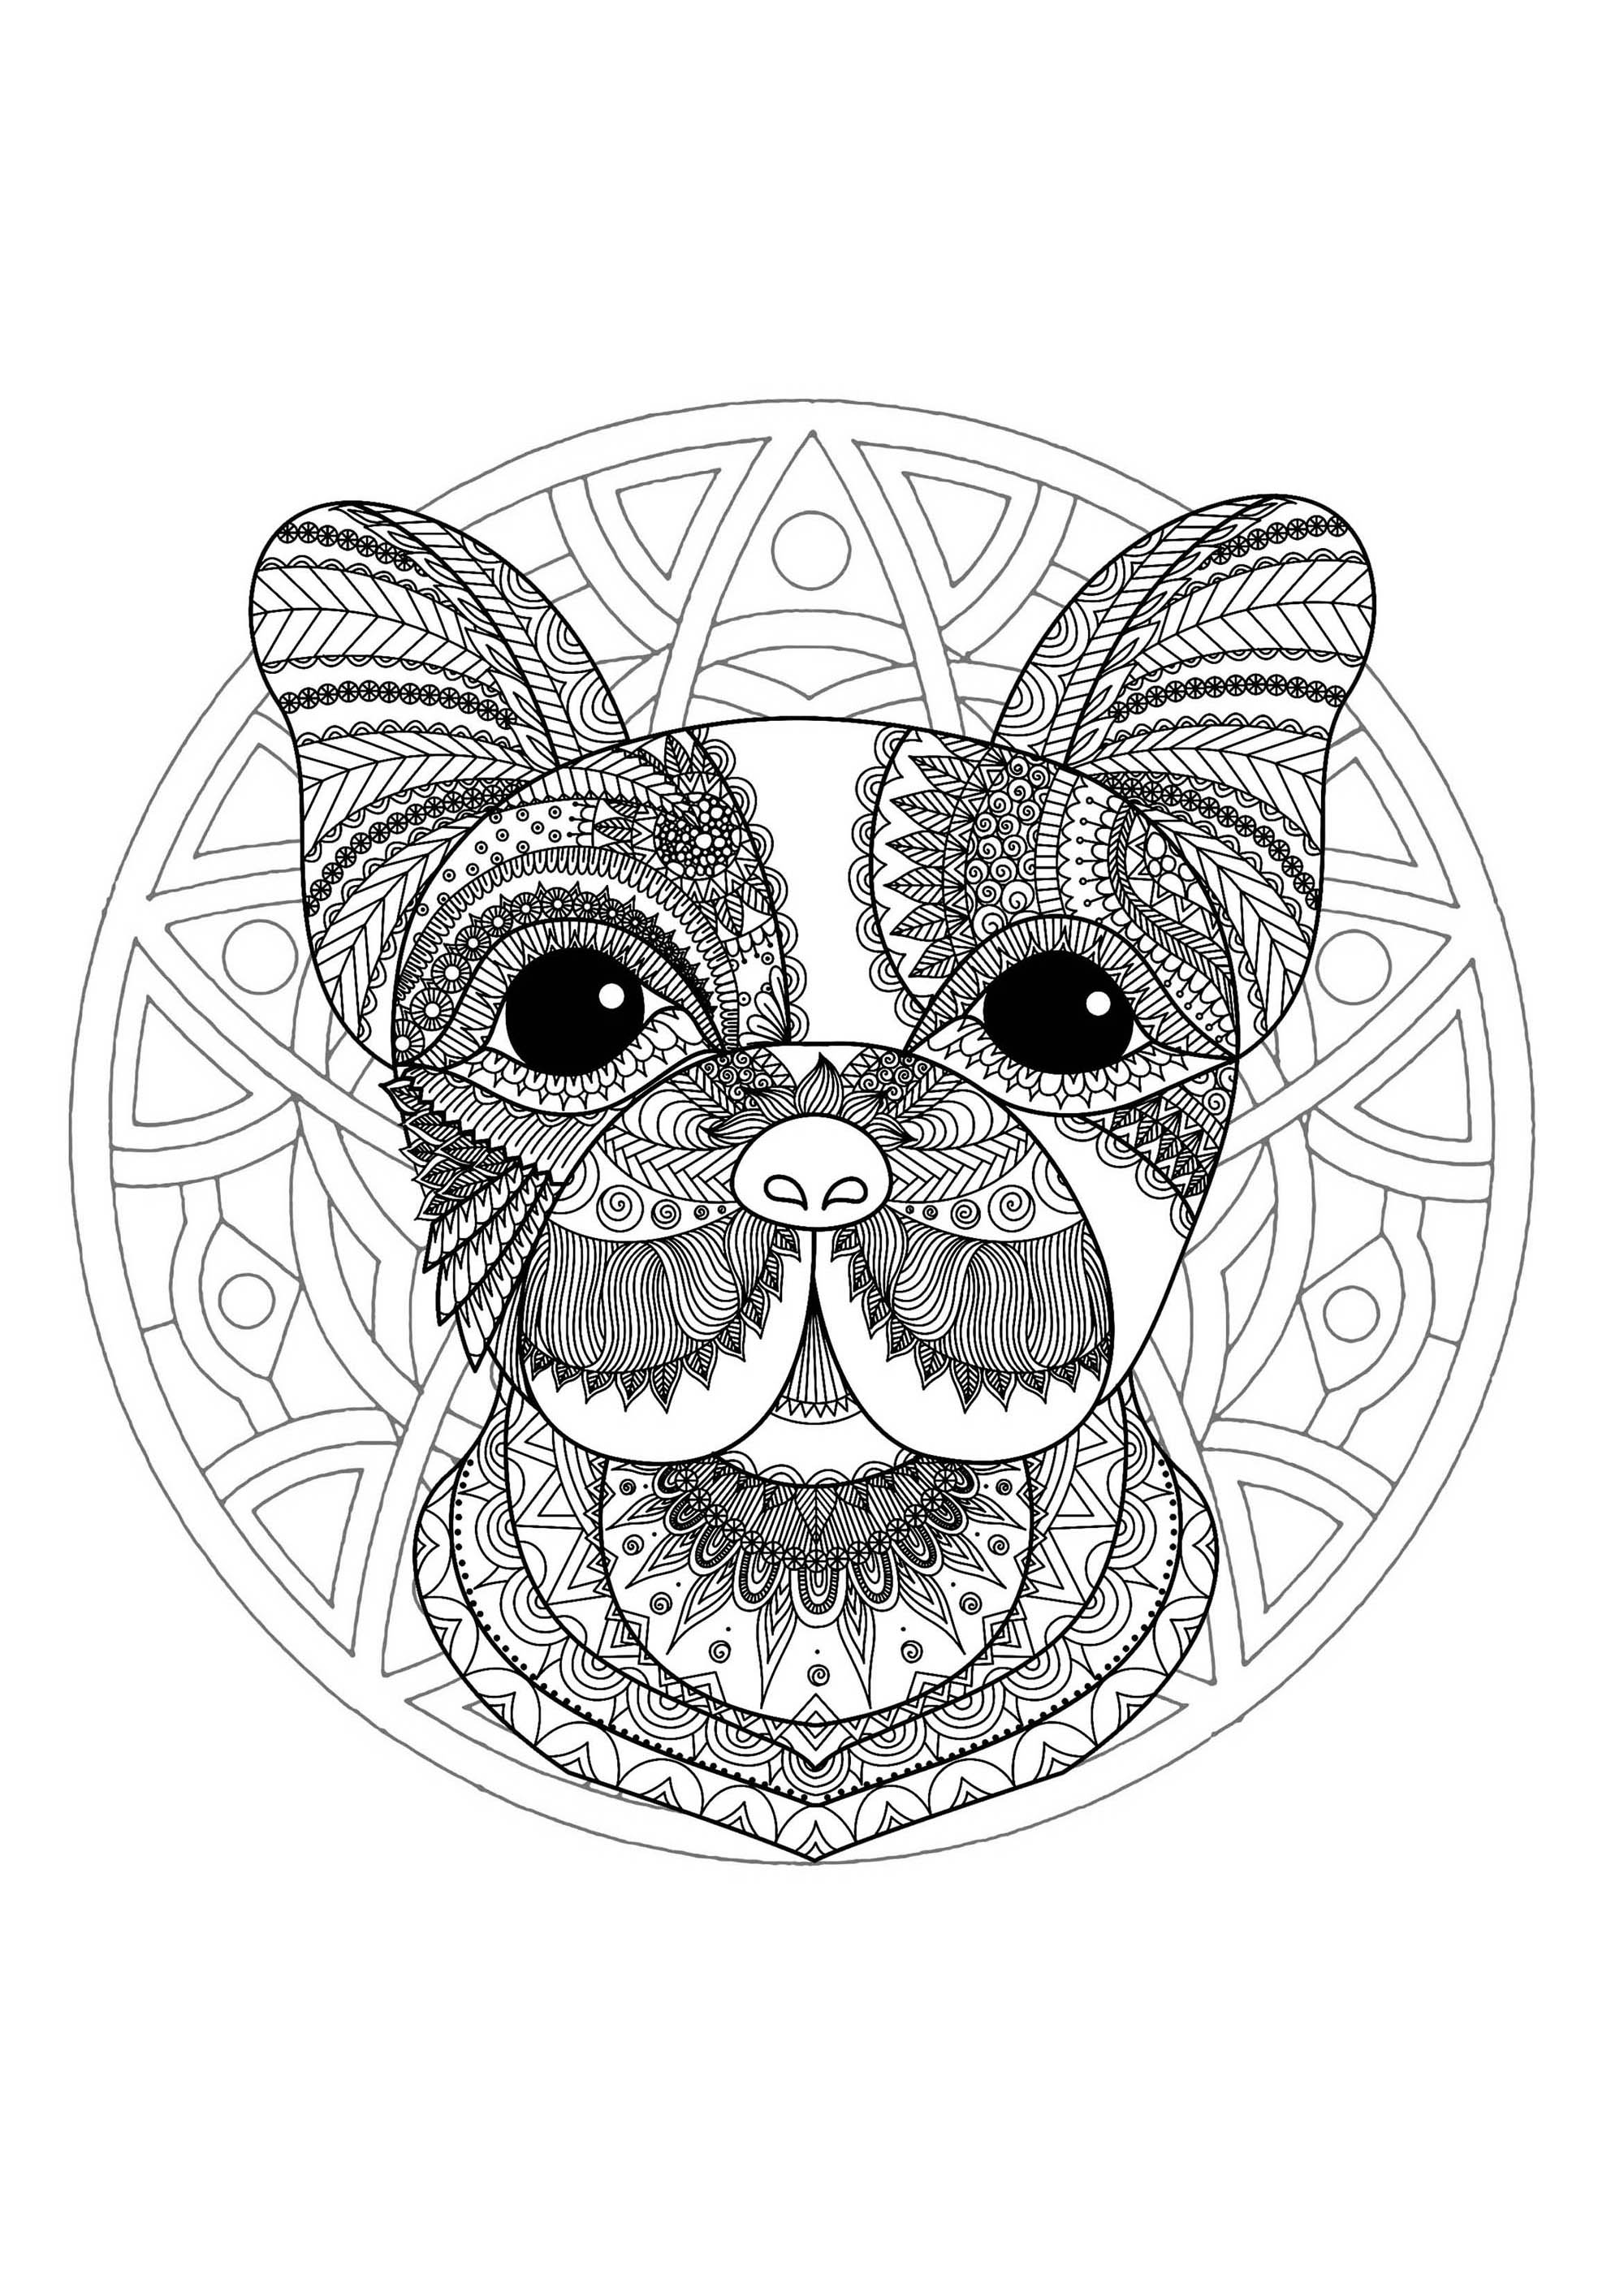 Mandala With Funny Dog Head And Elegant Patterns